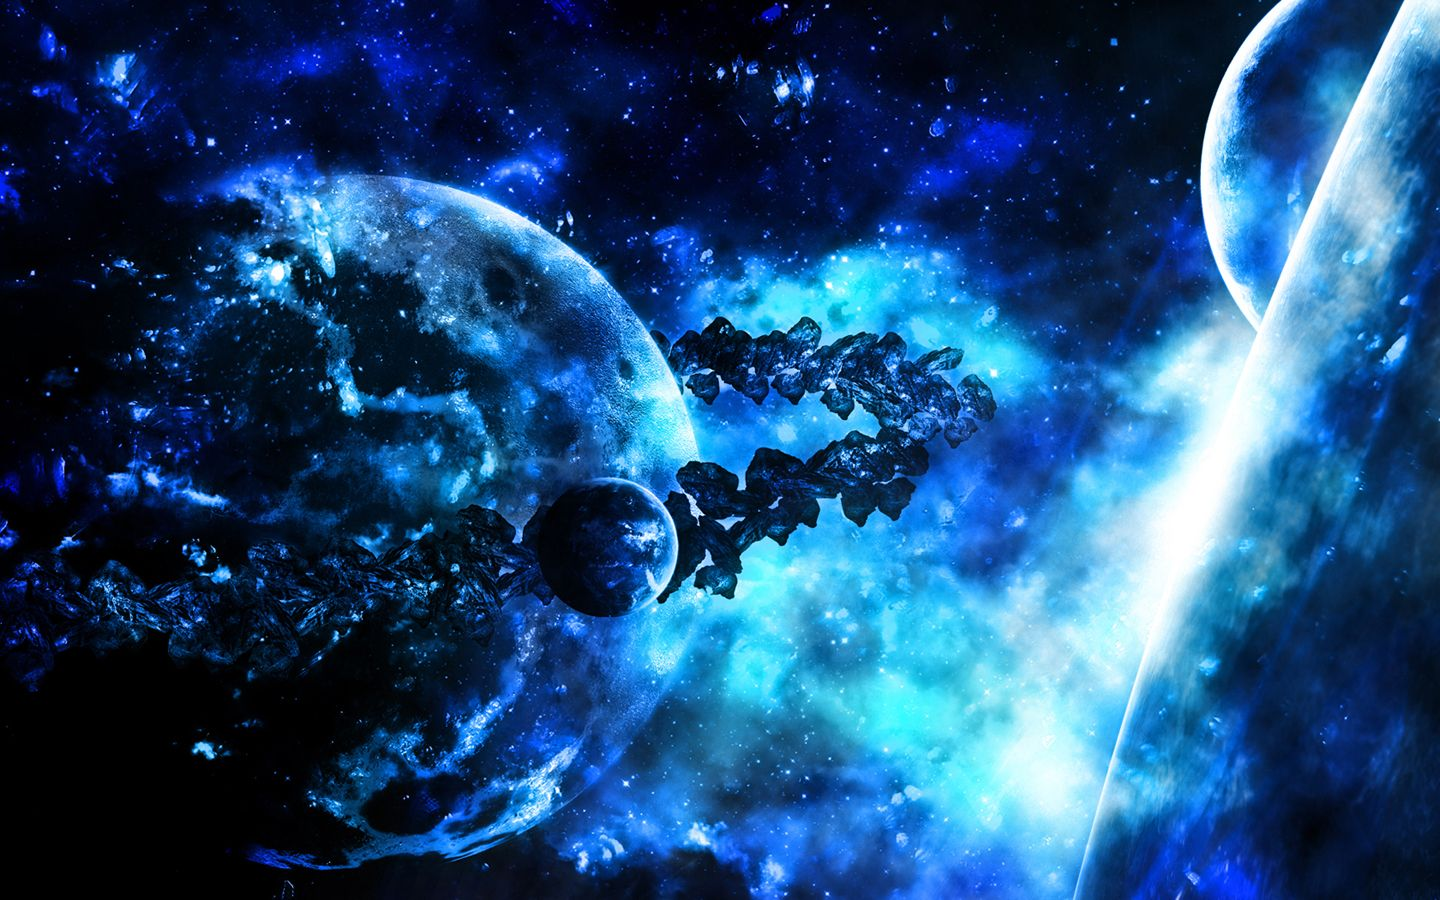 Space Fantasy Wallpaper Set 42 Wallpaper Space Space Fantasy Space Backgrounds